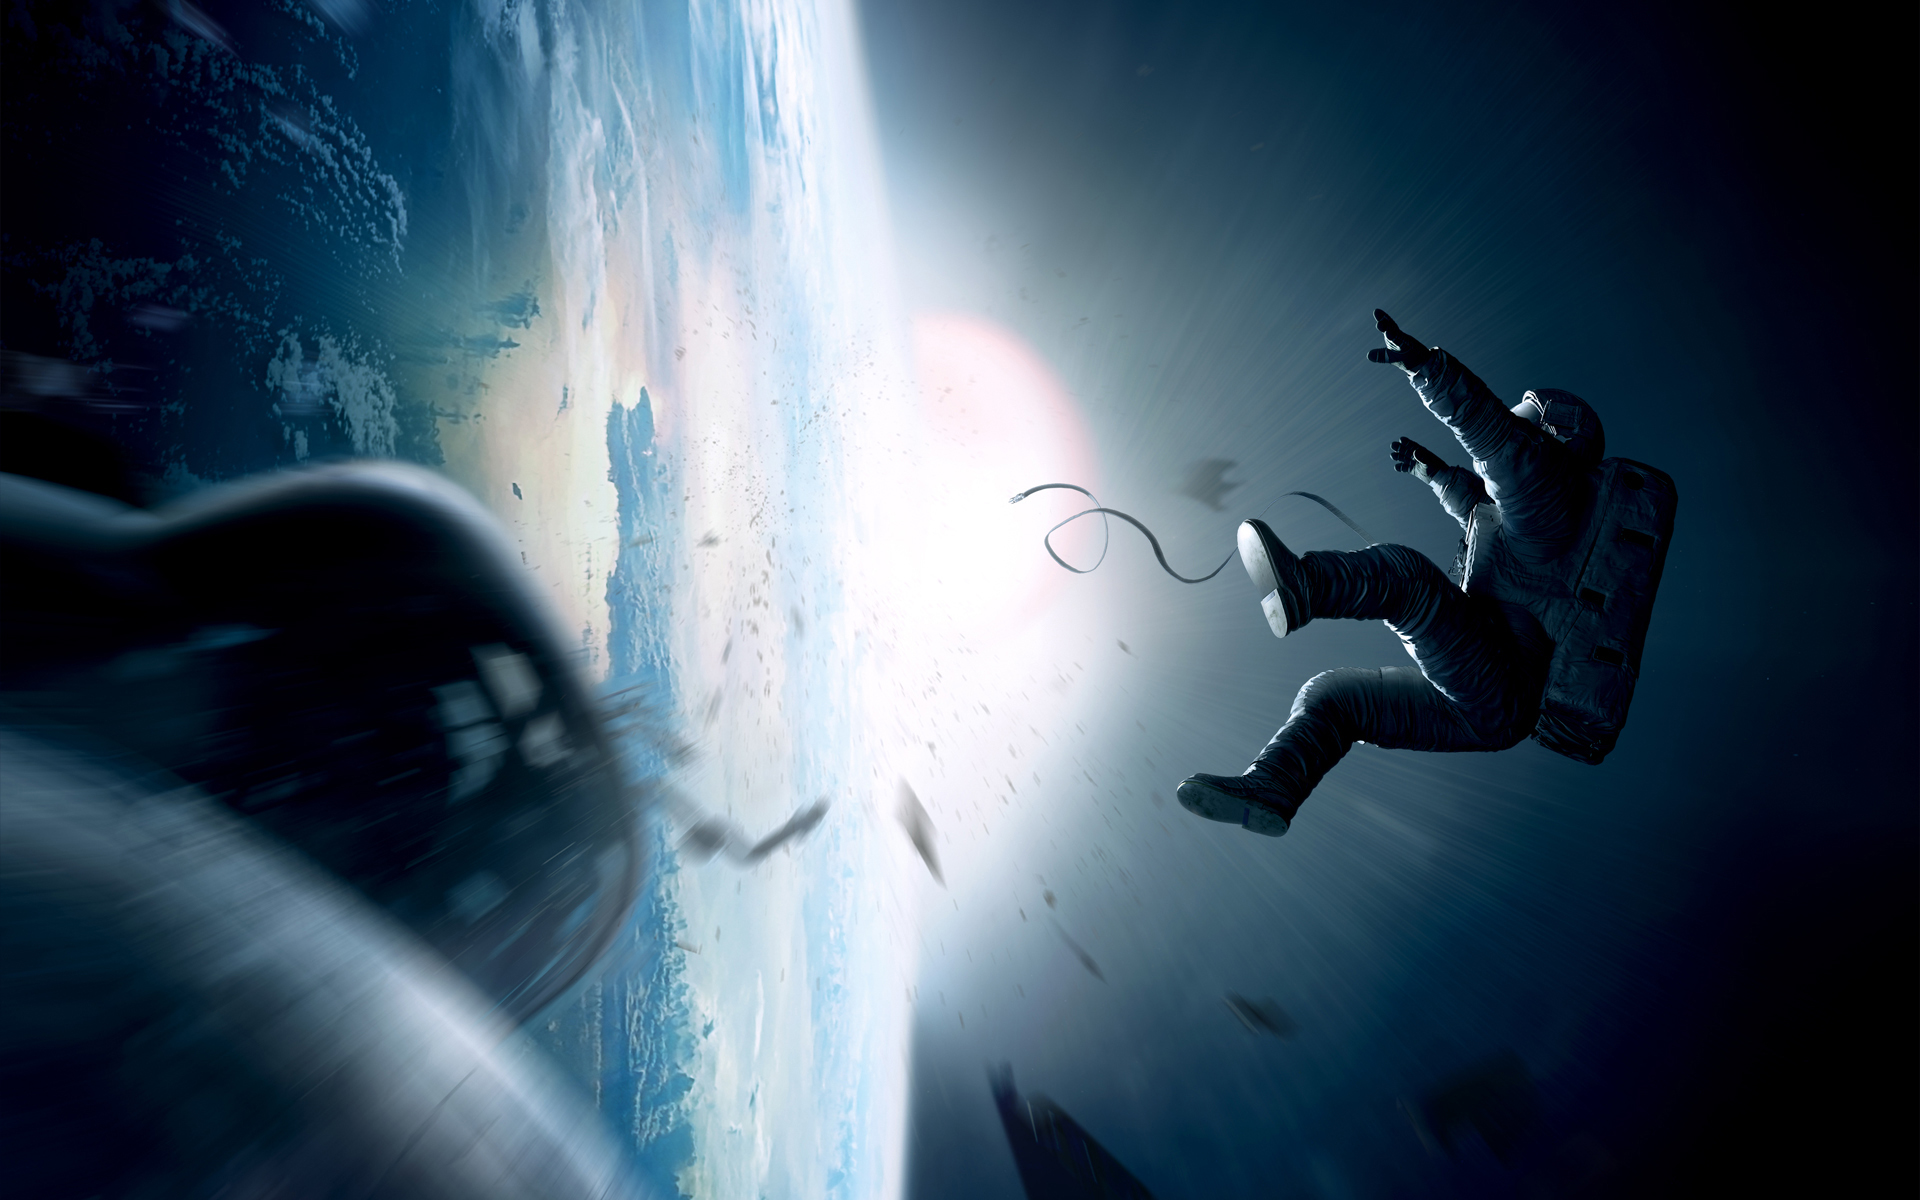 Best Wallpaper High Quality Photography - gravity-1  HD_185641.jpg